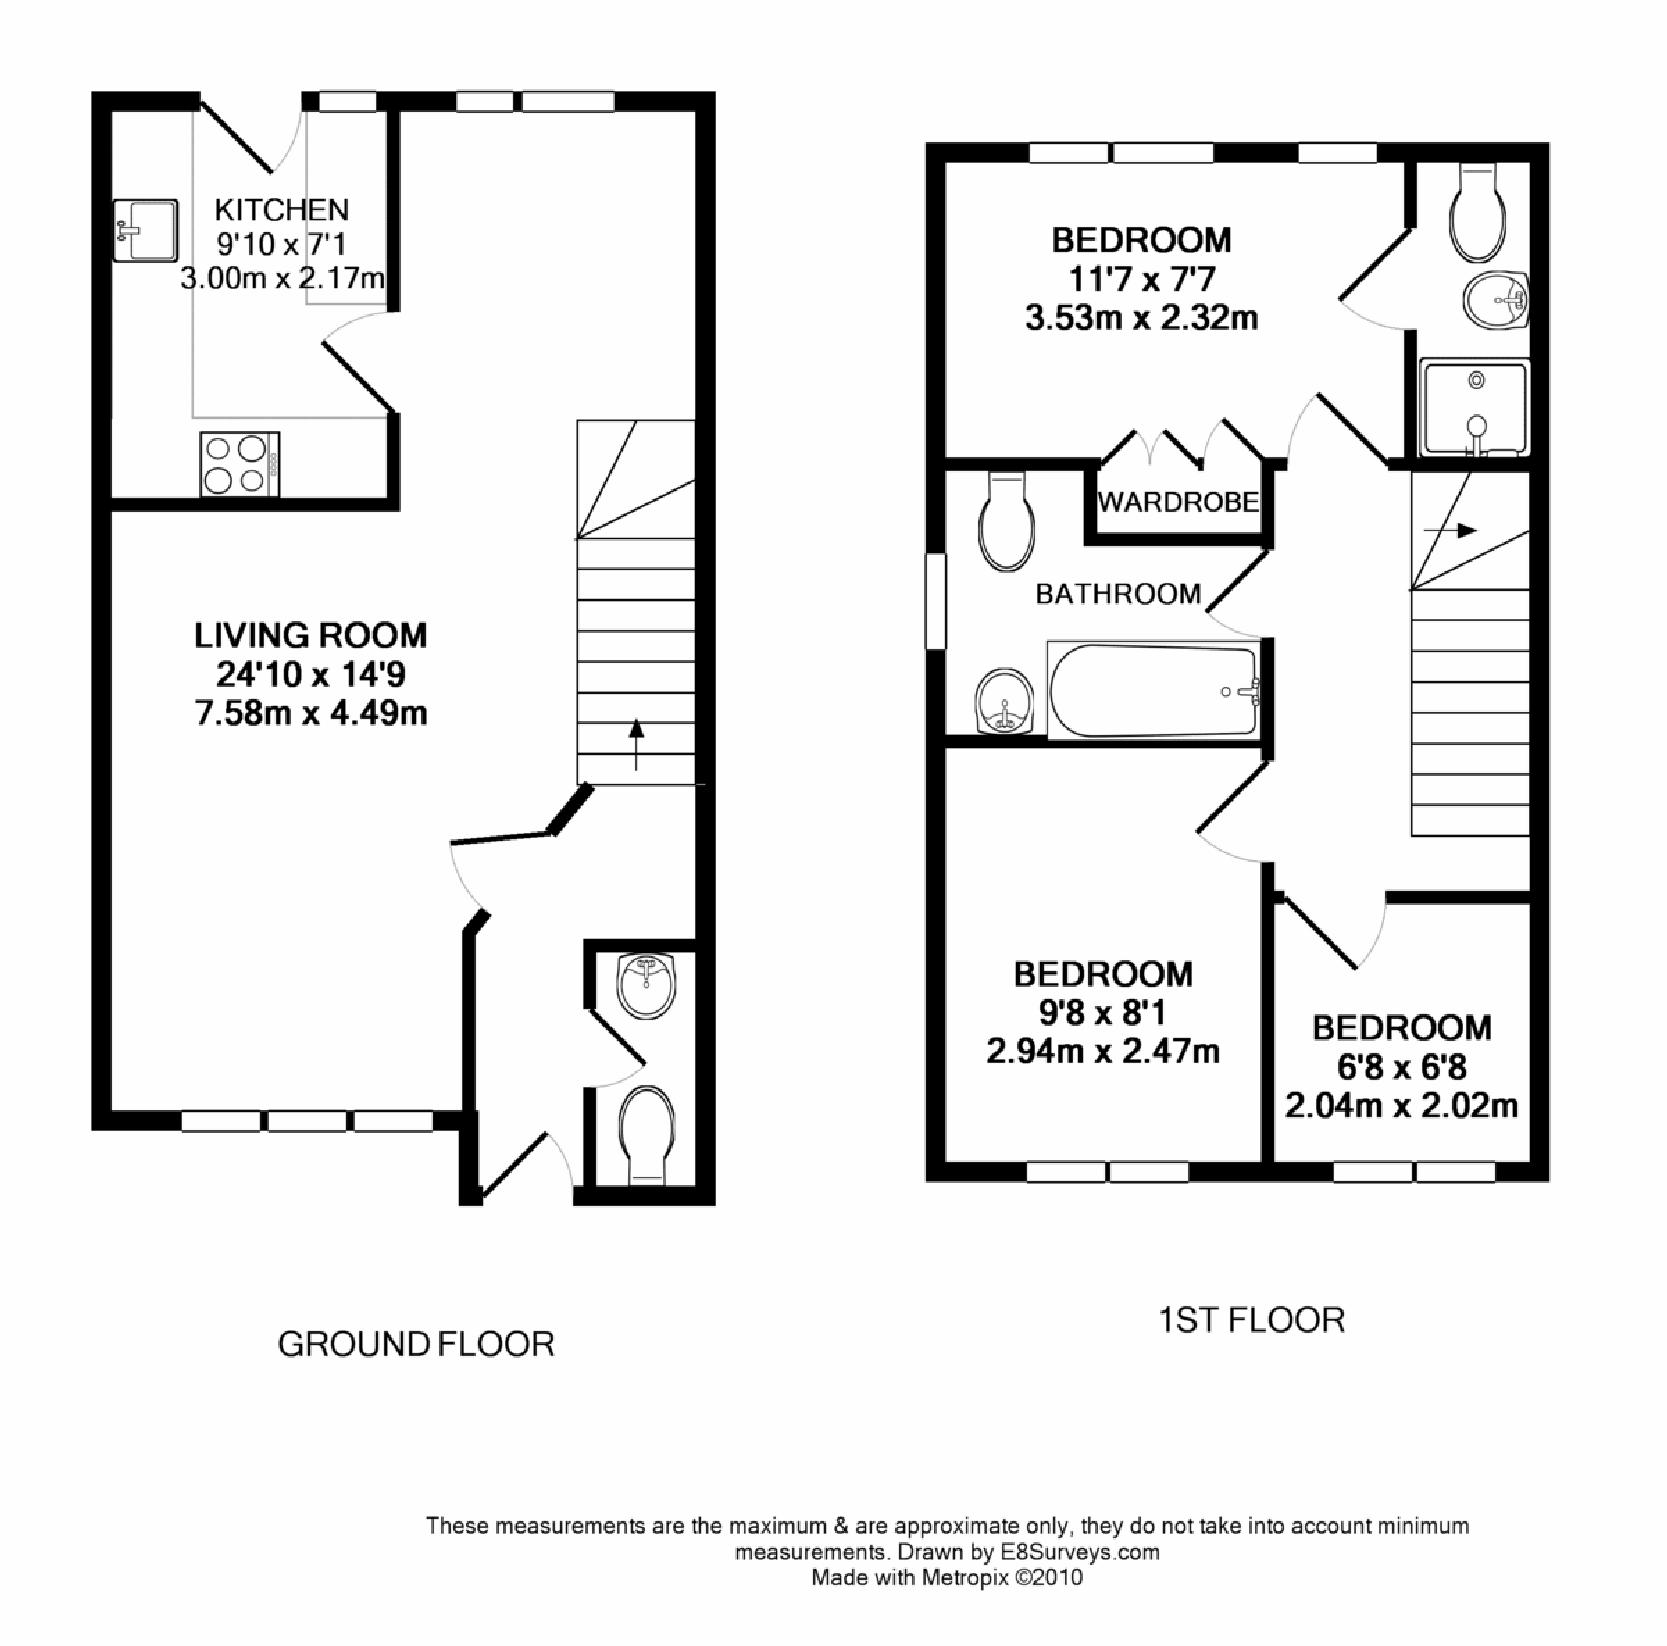 Orchard road botley ox2 ref 3650 oxford botley for 5 bedroom house designs uk